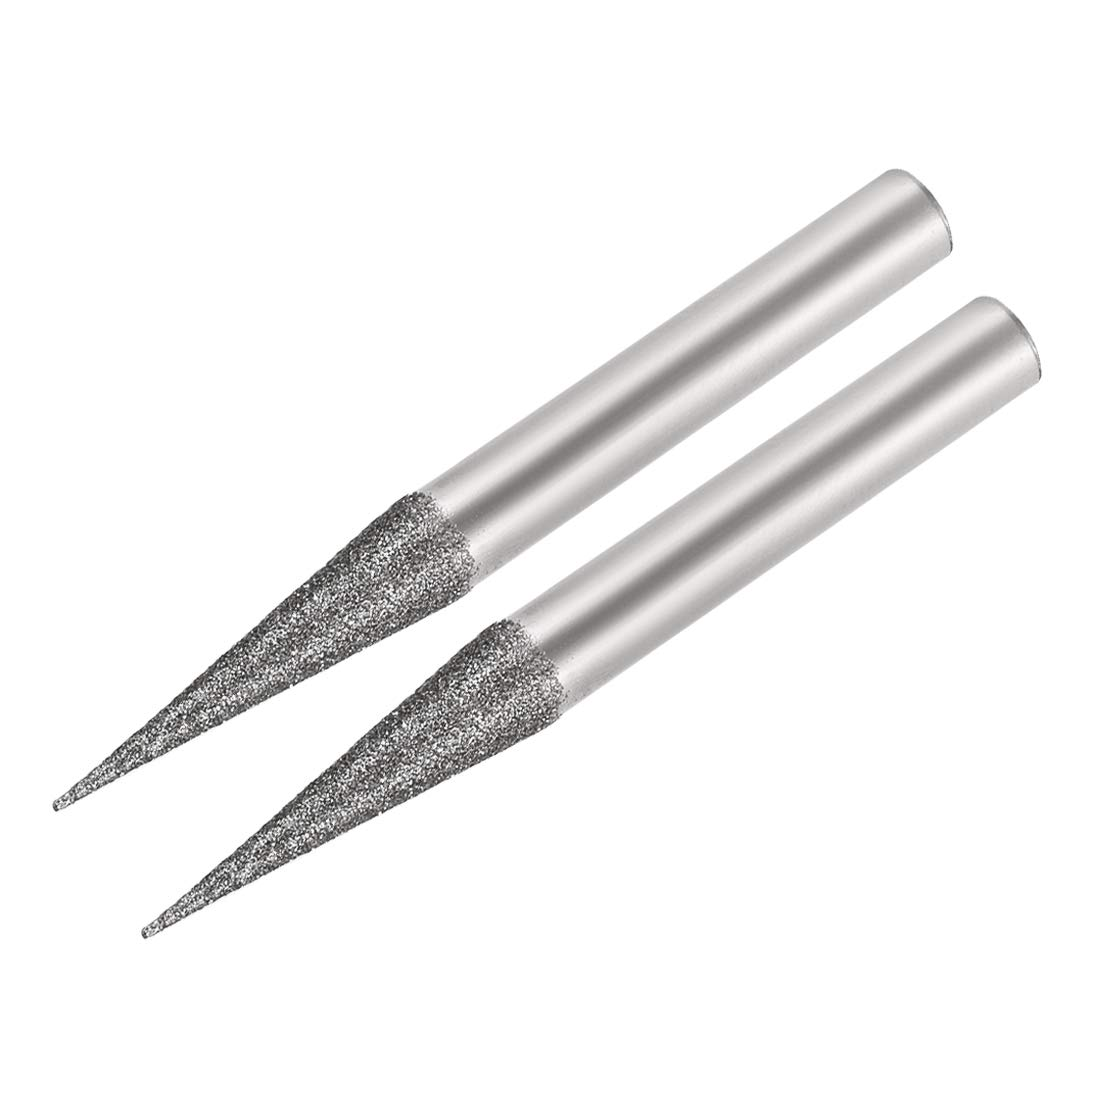 uxcell Silver Tone 6 x 10mm Diamond Head Polishing Grinding Bit Point Burr